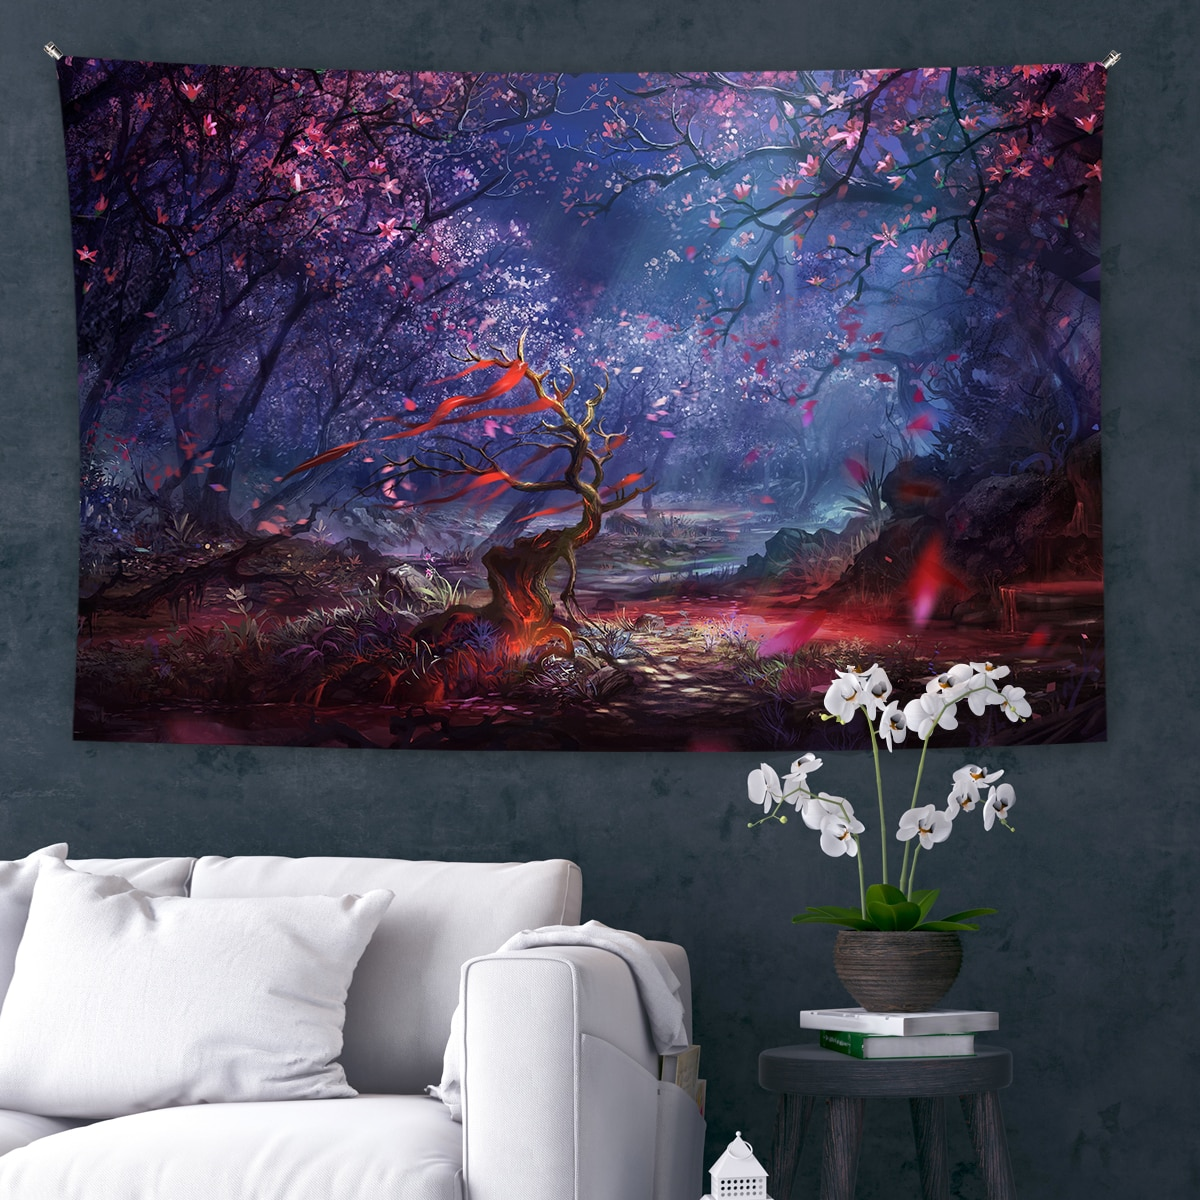 Psychedelic Mushroom Tapestry Starry Sky Tapestry Trippy Wall Tapestry Fantasy Plant Tapestry Wall Hanging For Dorm Home Decor psychedelic brick dorm decor wall hanging tapestry